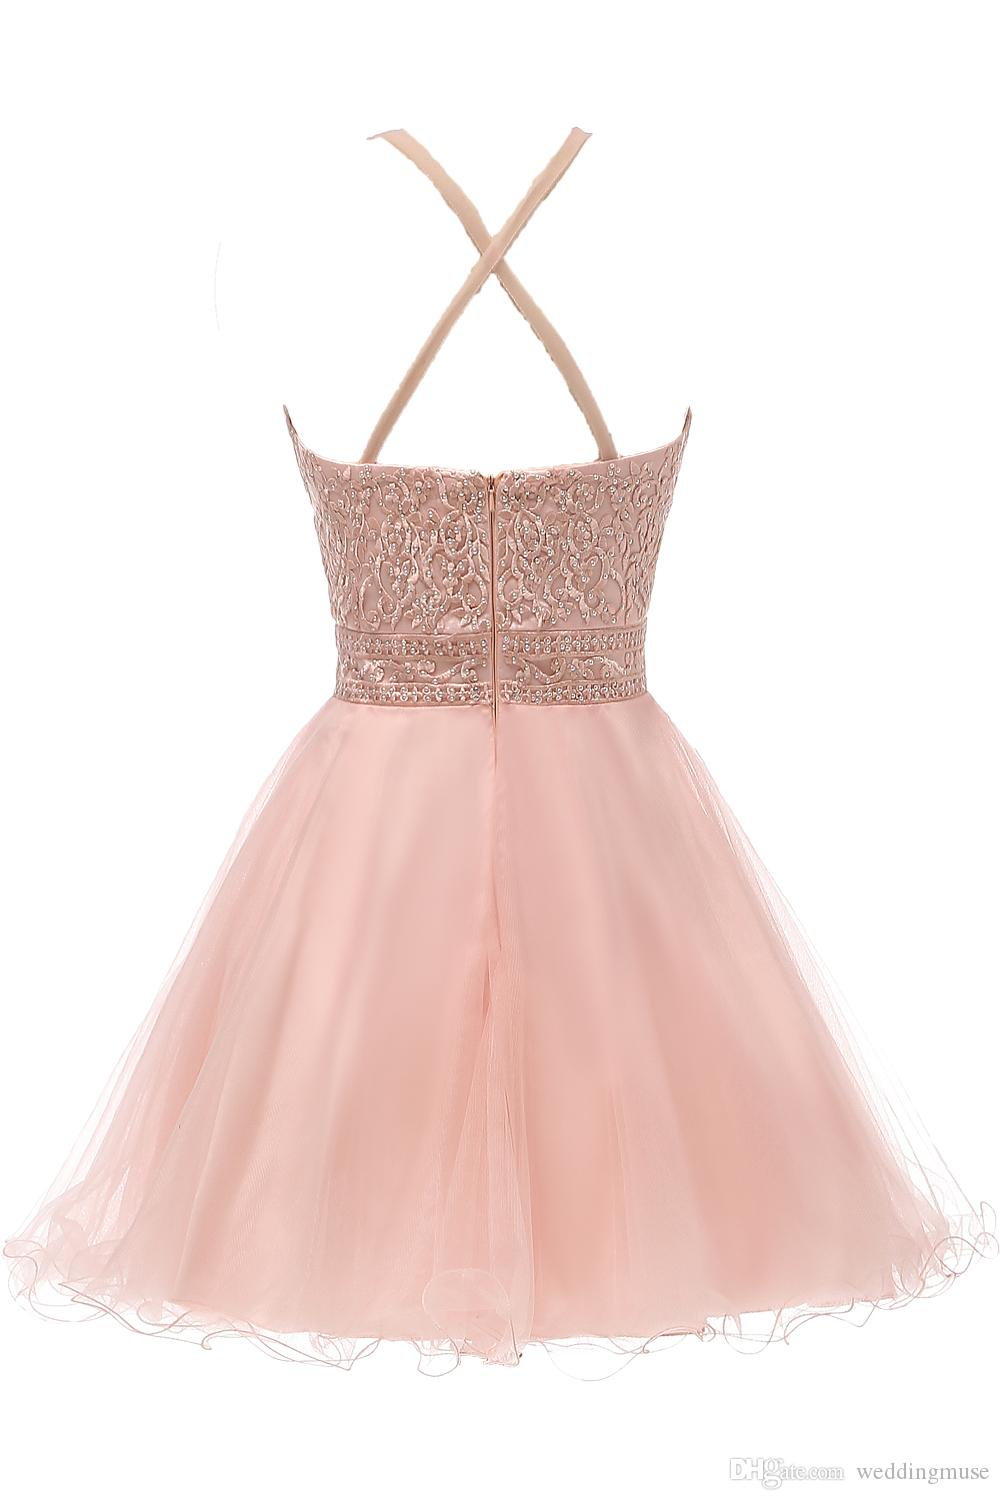 New Blush Short Prom Dresses Halter Lace Appliques Beaded A Line Ruffles Skirt Criss-Cross Back Homecoming Dress Graduation Prom Gown